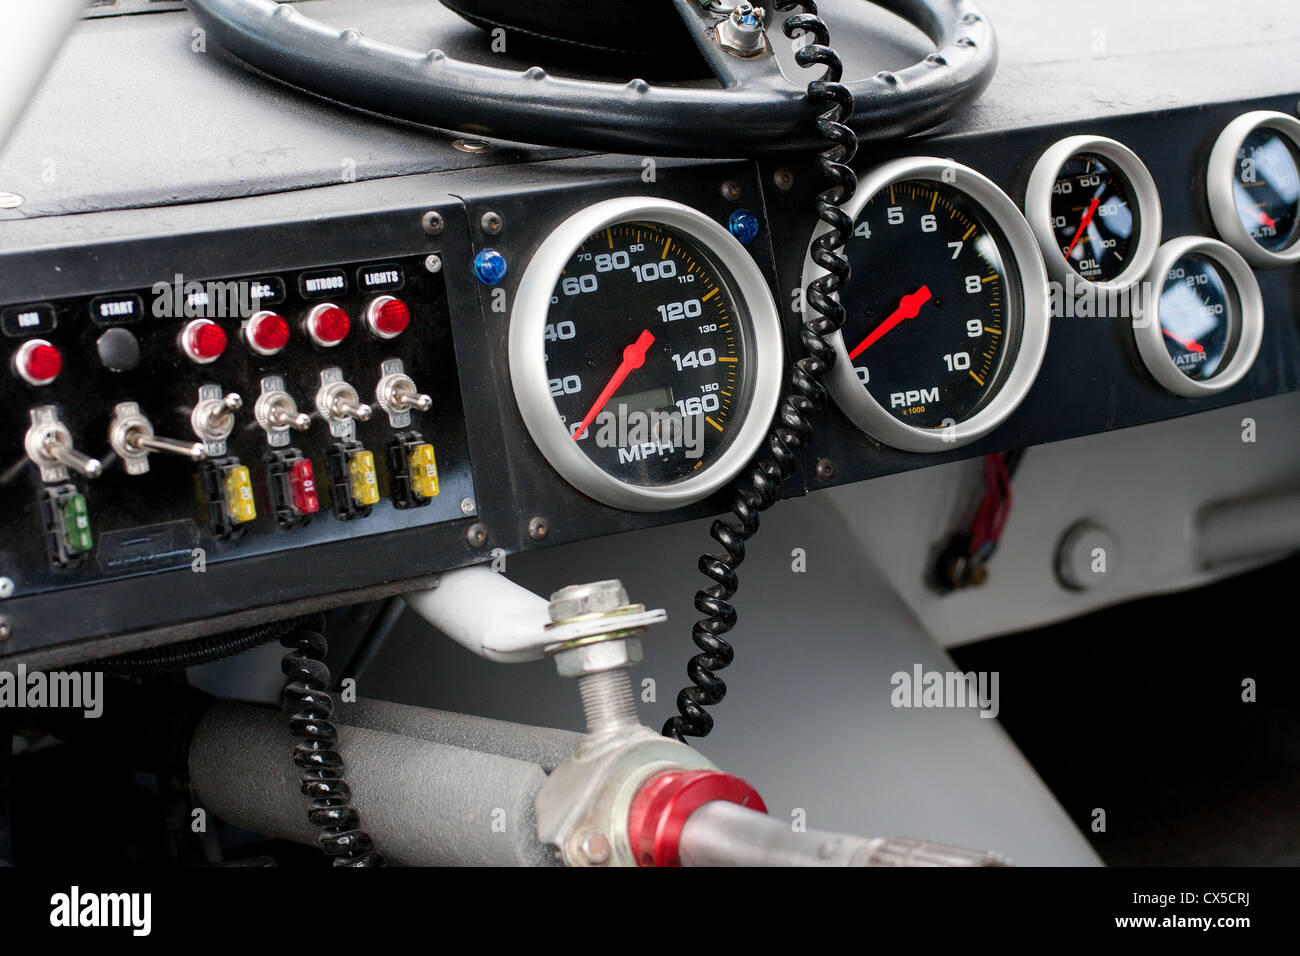 nascar dashboard with steering wheel detached stock photo royalty free image 50521622 alamy. Black Bedroom Furniture Sets. Home Design Ideas